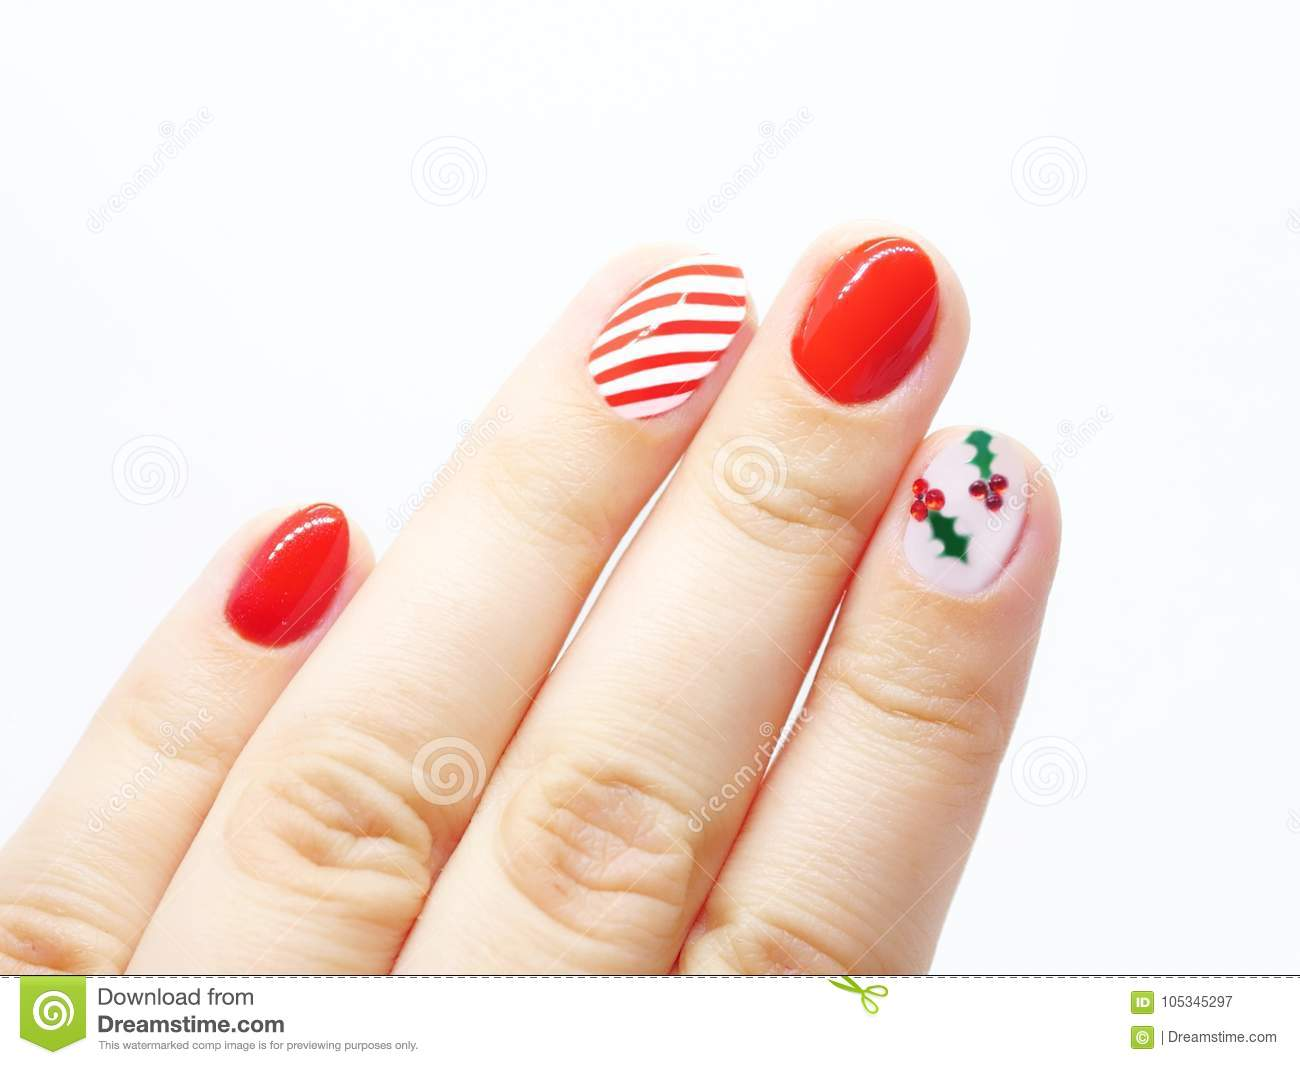 Christmas Nail Art With White And Red Stripes And Mistletoe Leaves